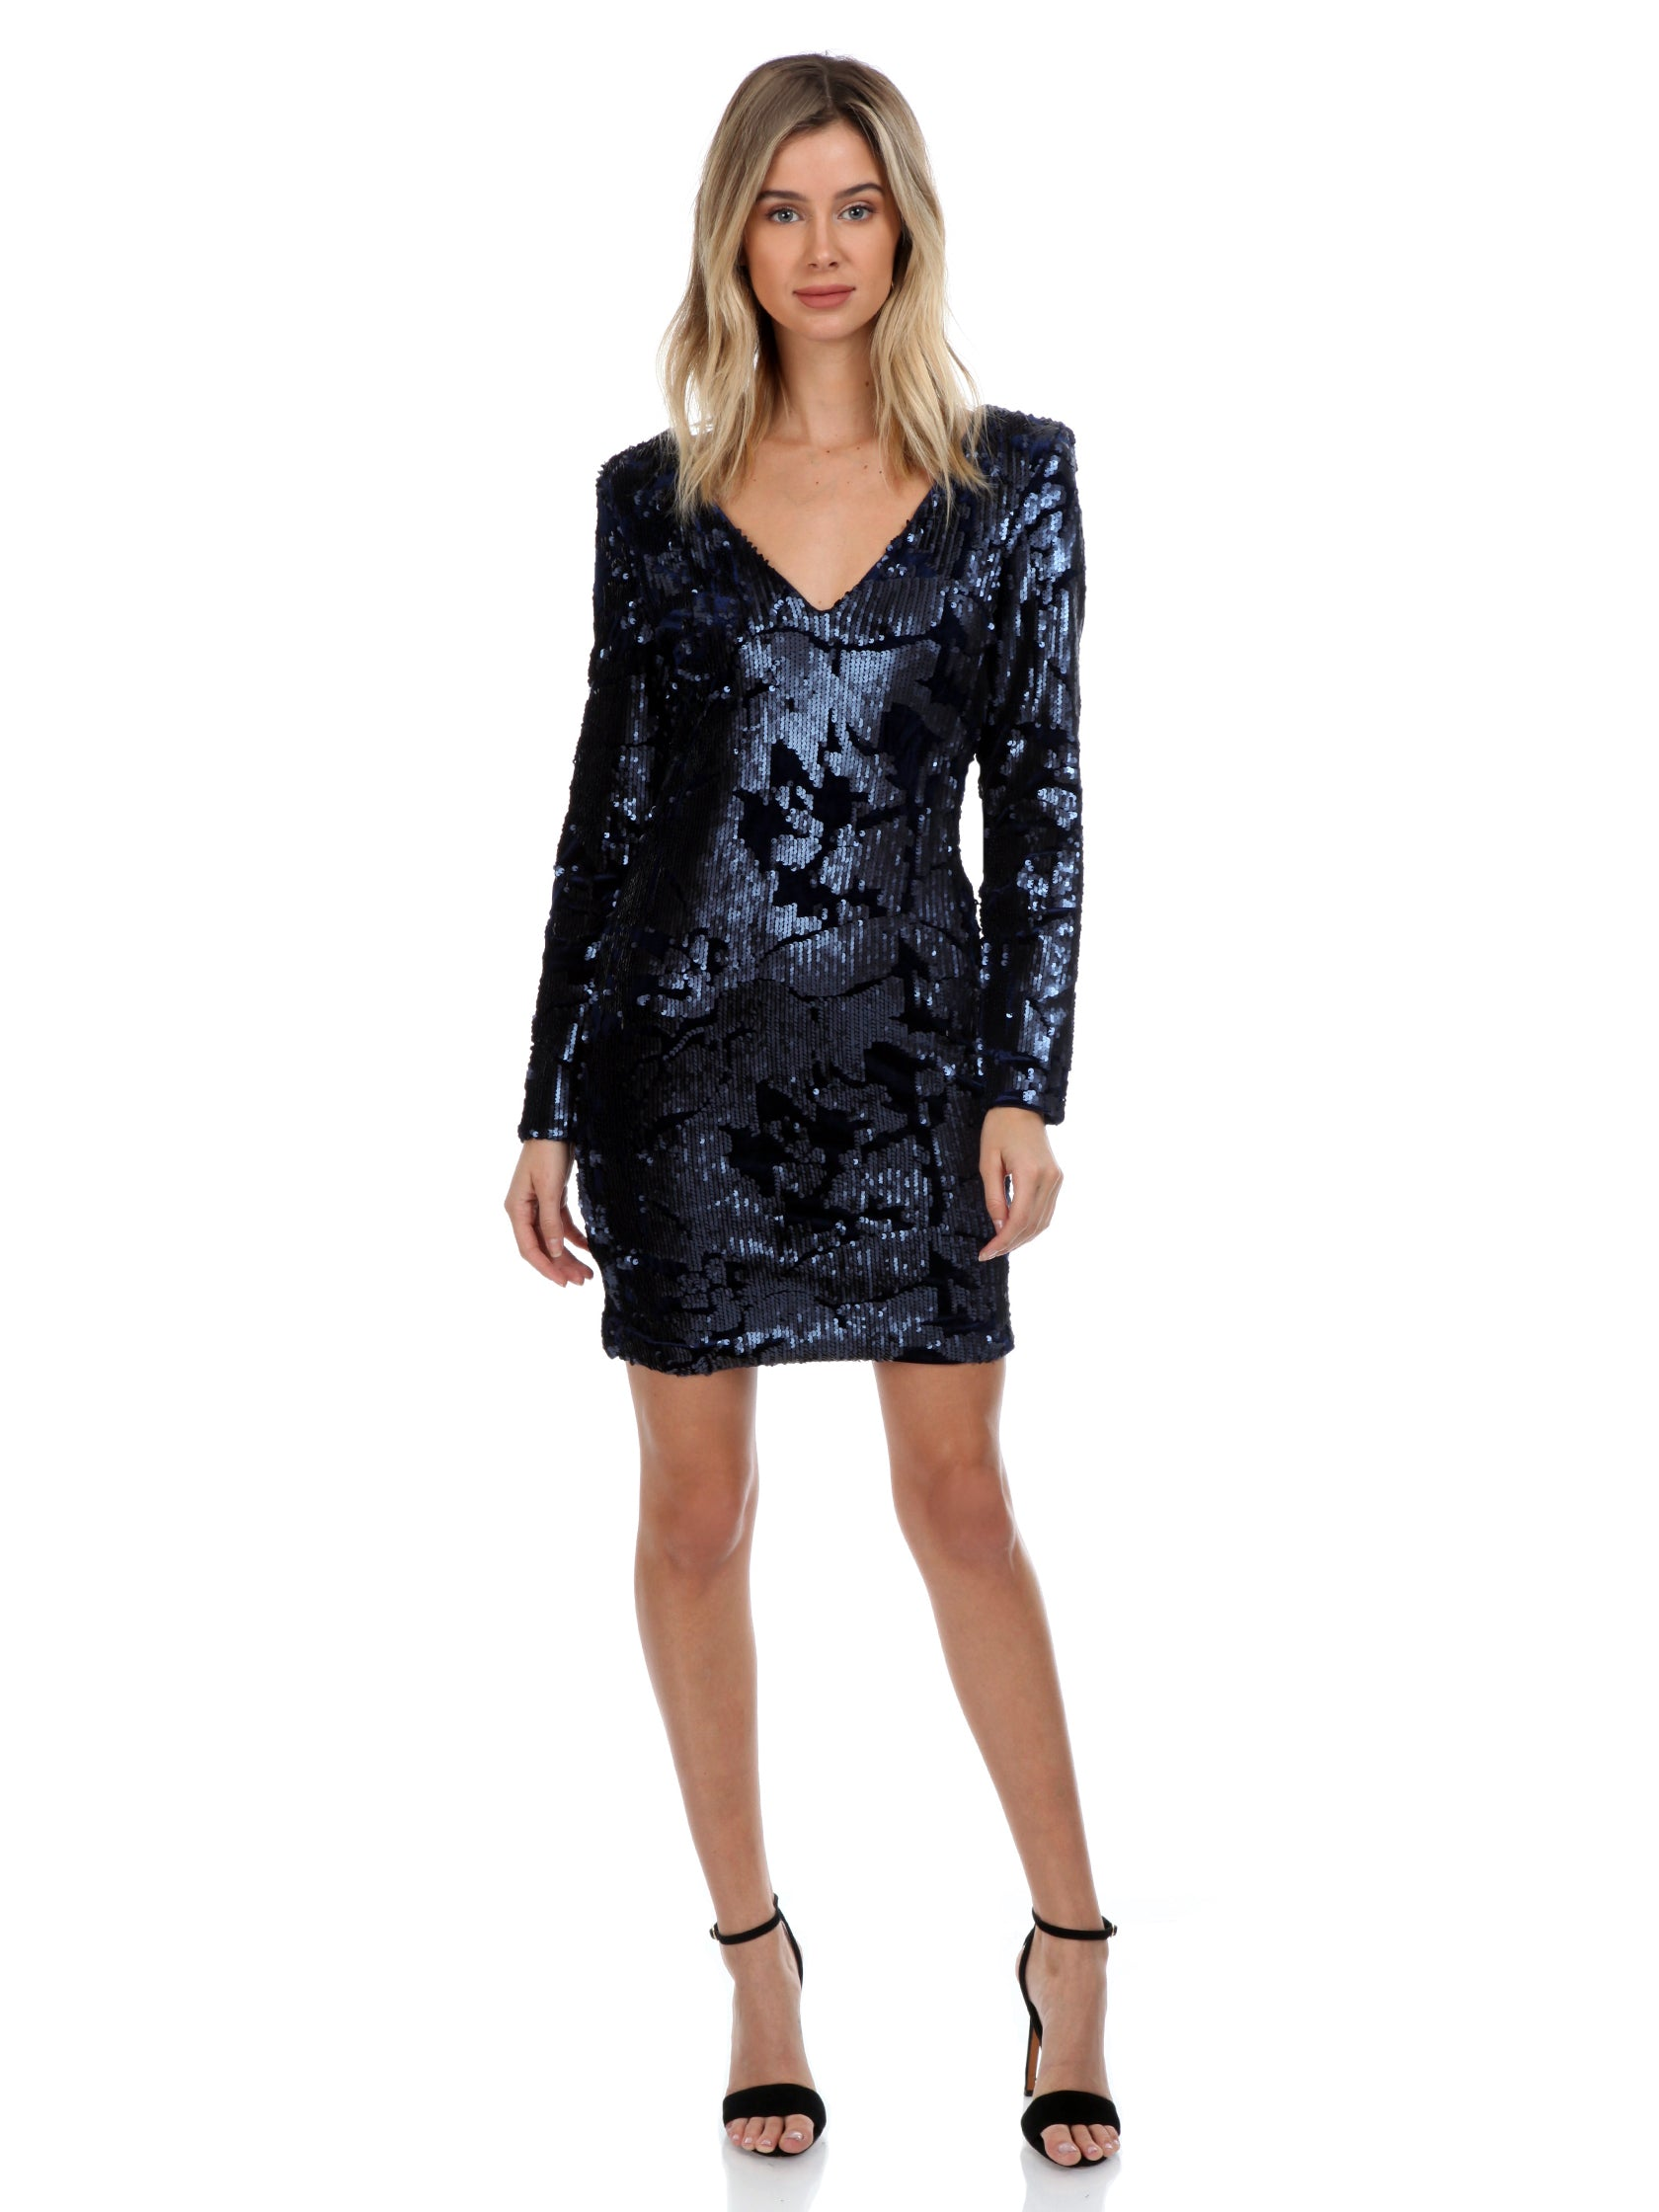 Girl outfit in a dress rental from WYLDR called Eveline Mini Sequin Dress